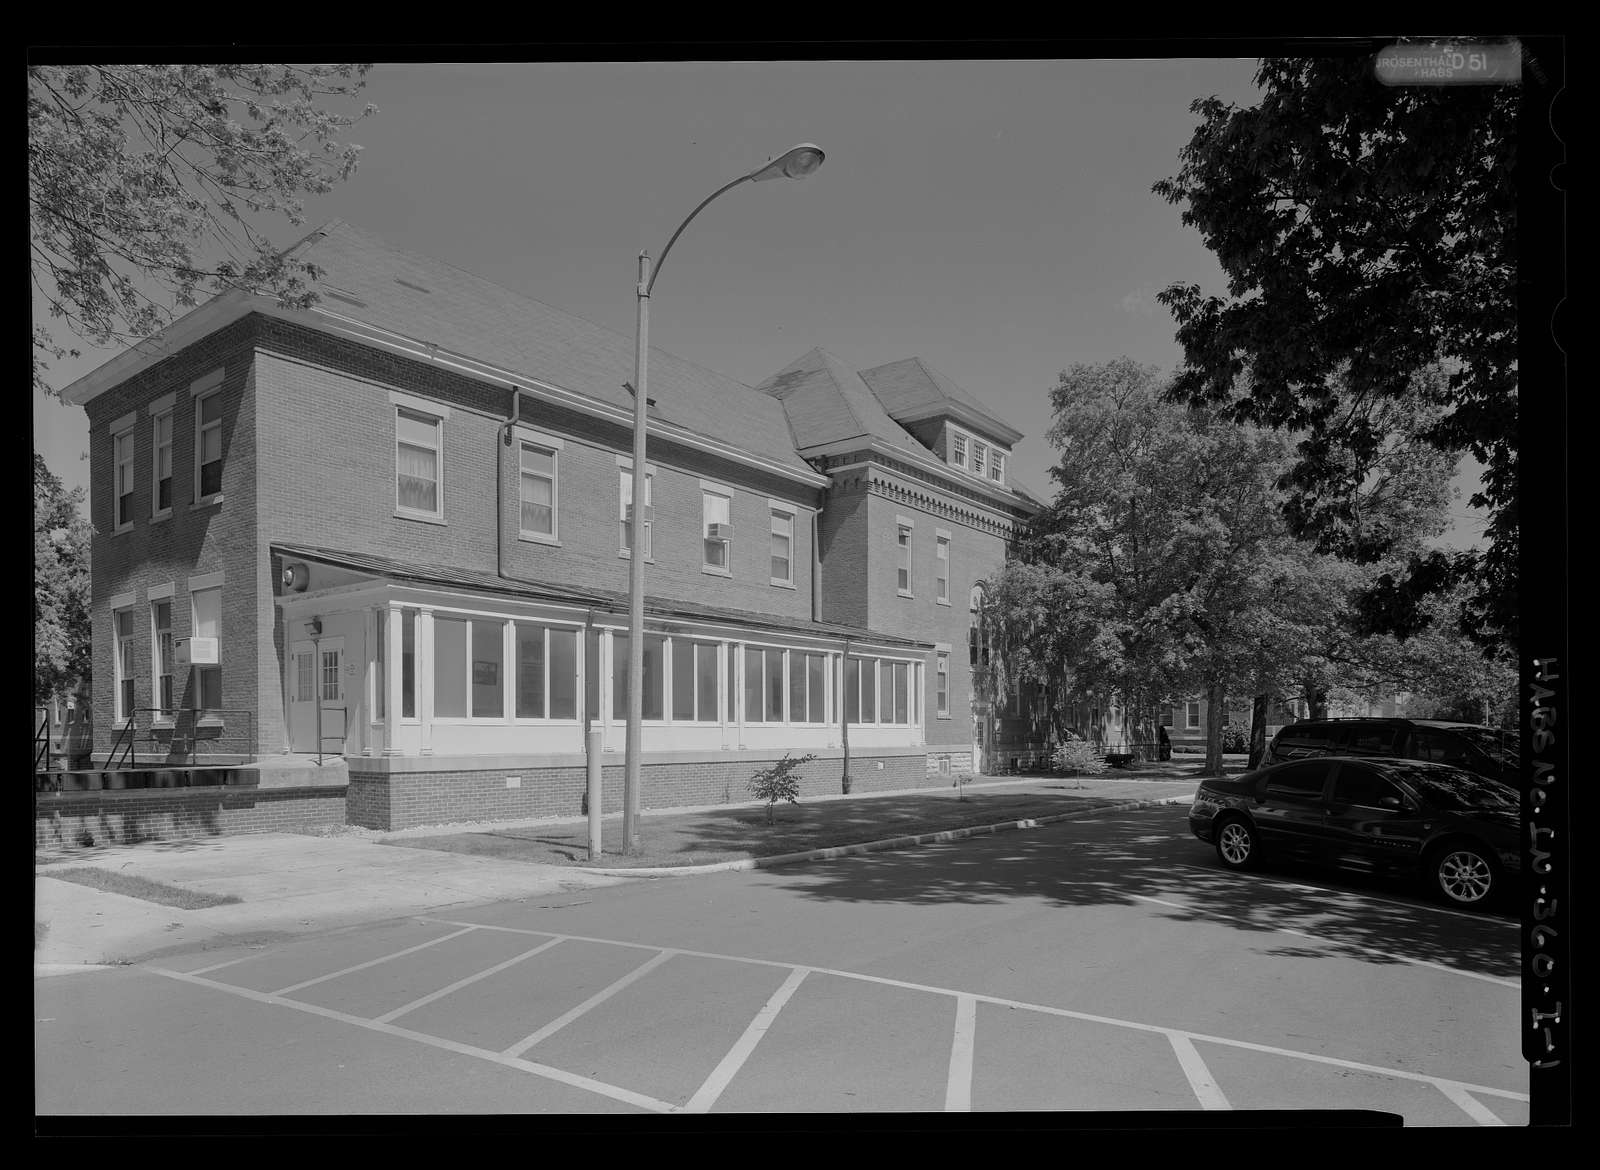 National Home for Disabled Volunteer Soldiers, Marion Branch, Building No. 3, 1700 East 38th Street, Marion, Grant County, IN